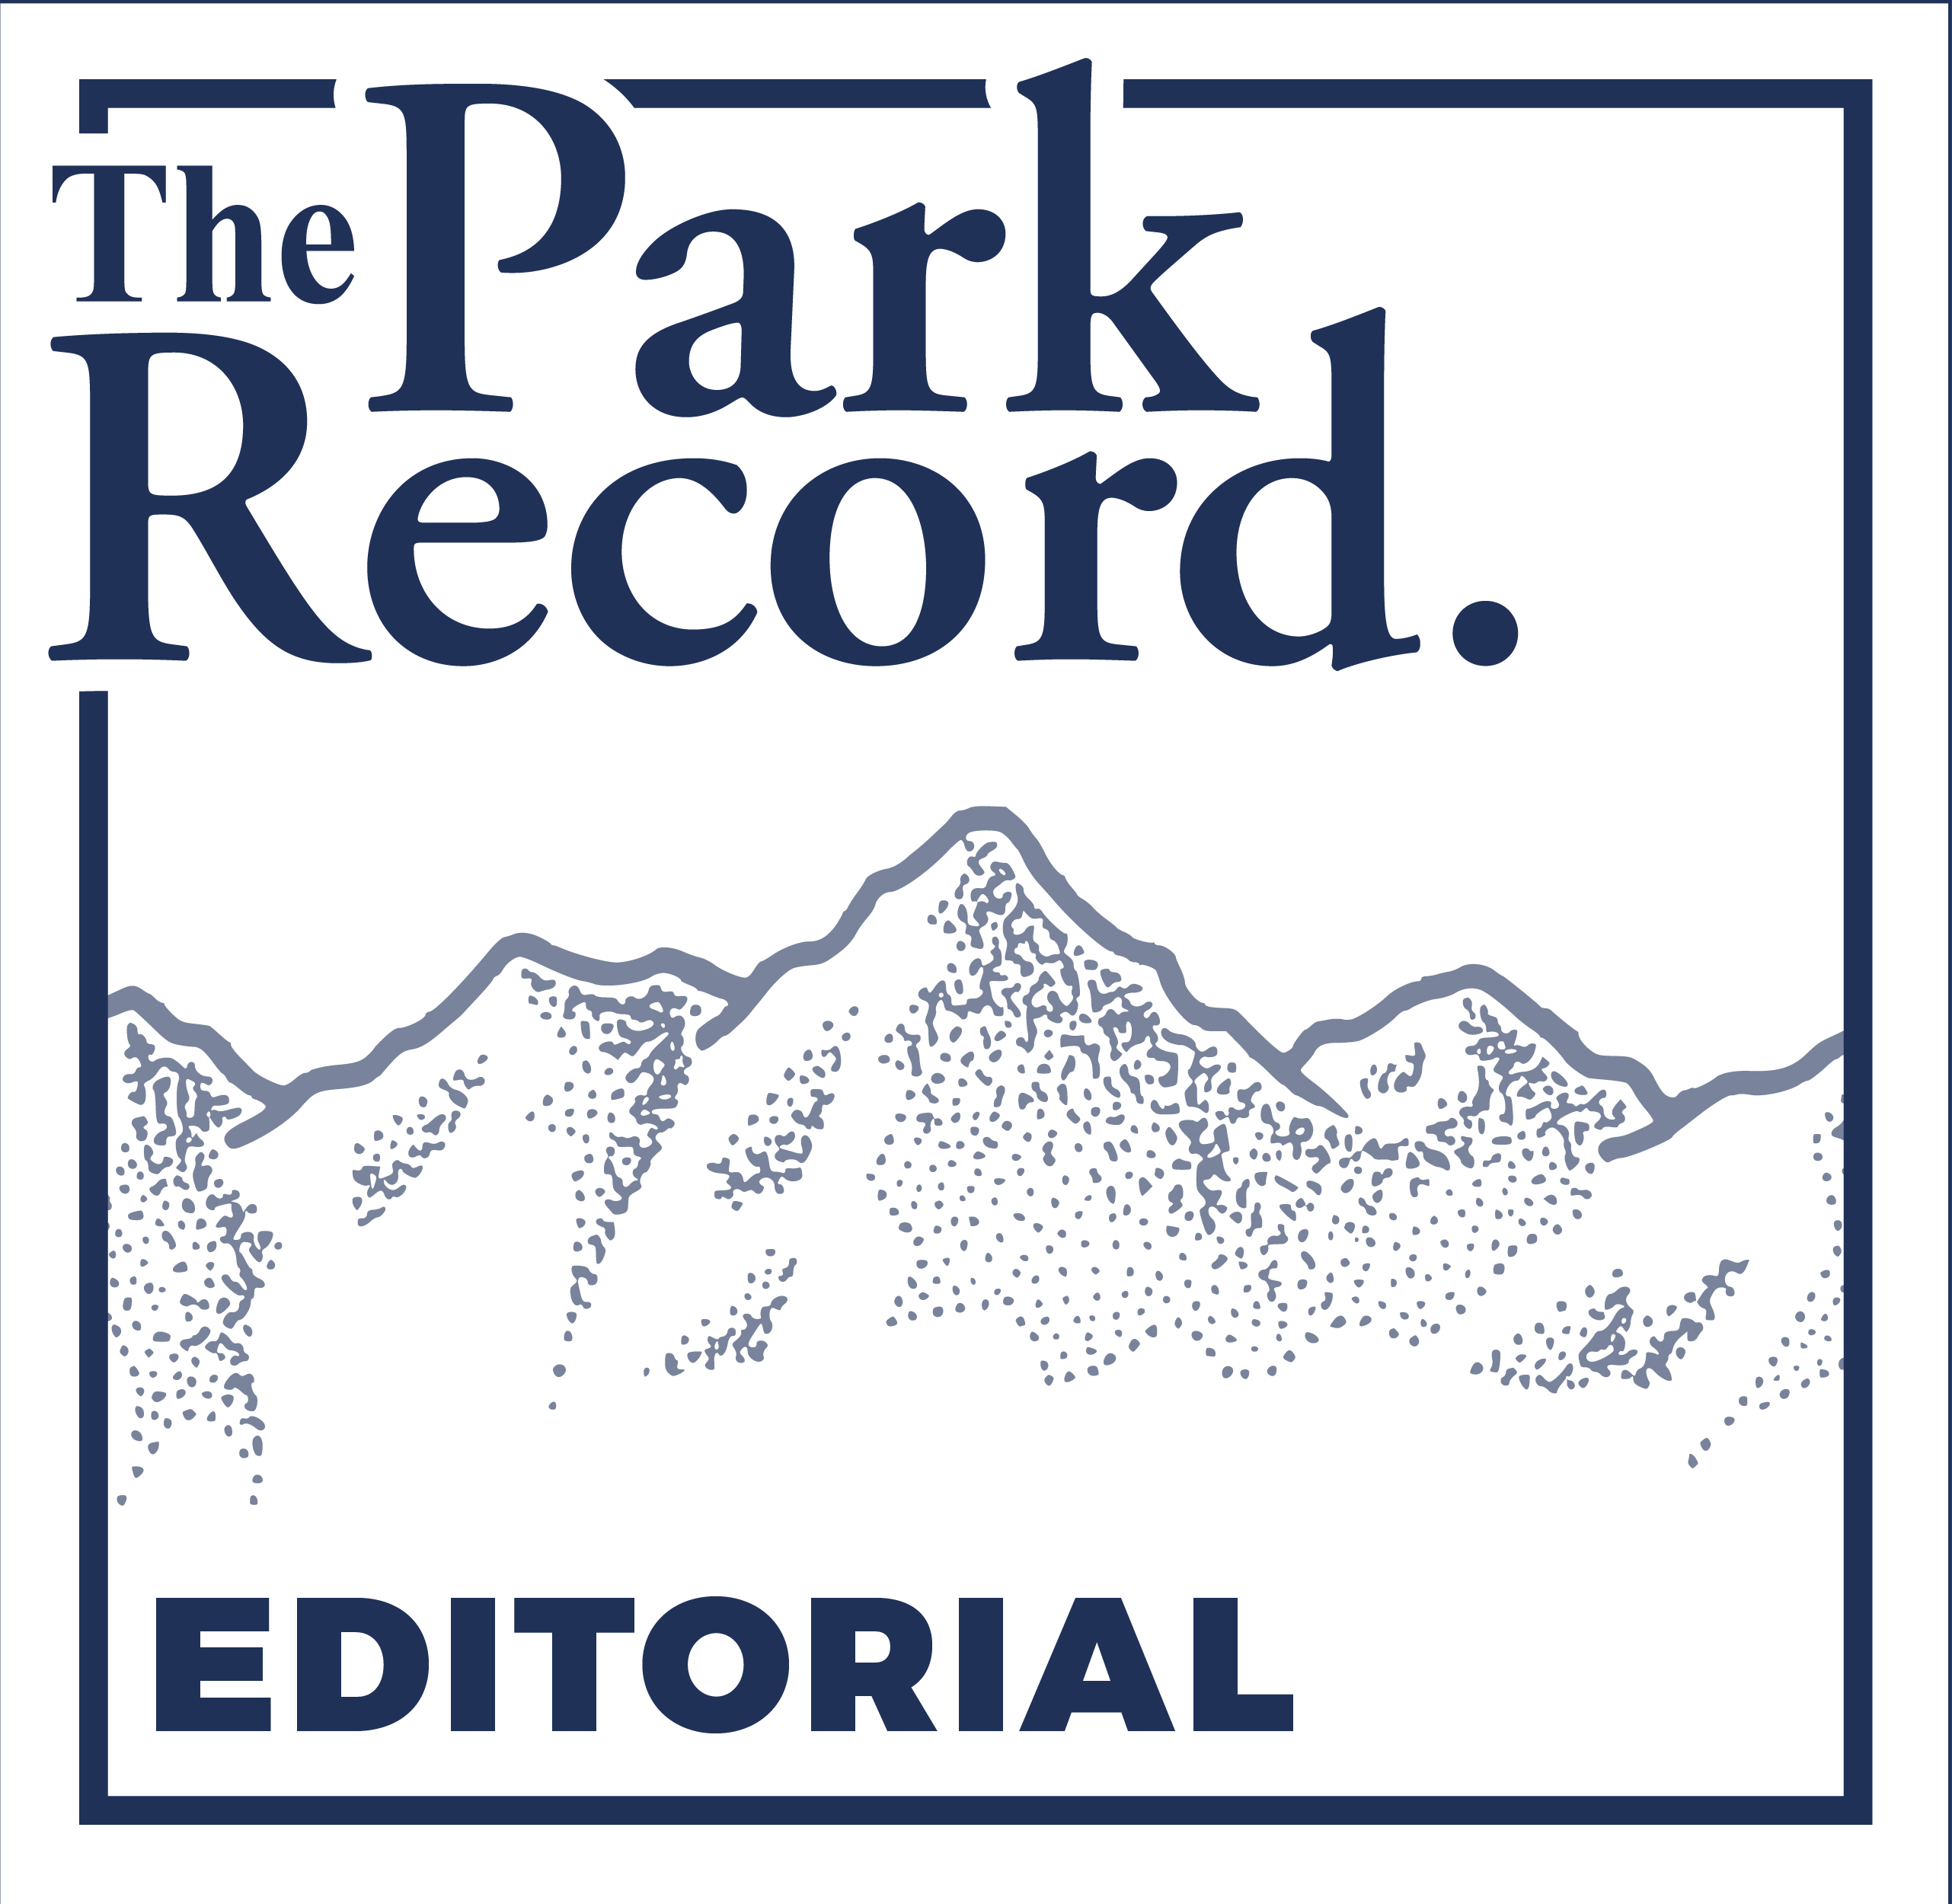 Record editorial: Opportunity gap in Park City schools has narrowed, but effort is far from finished